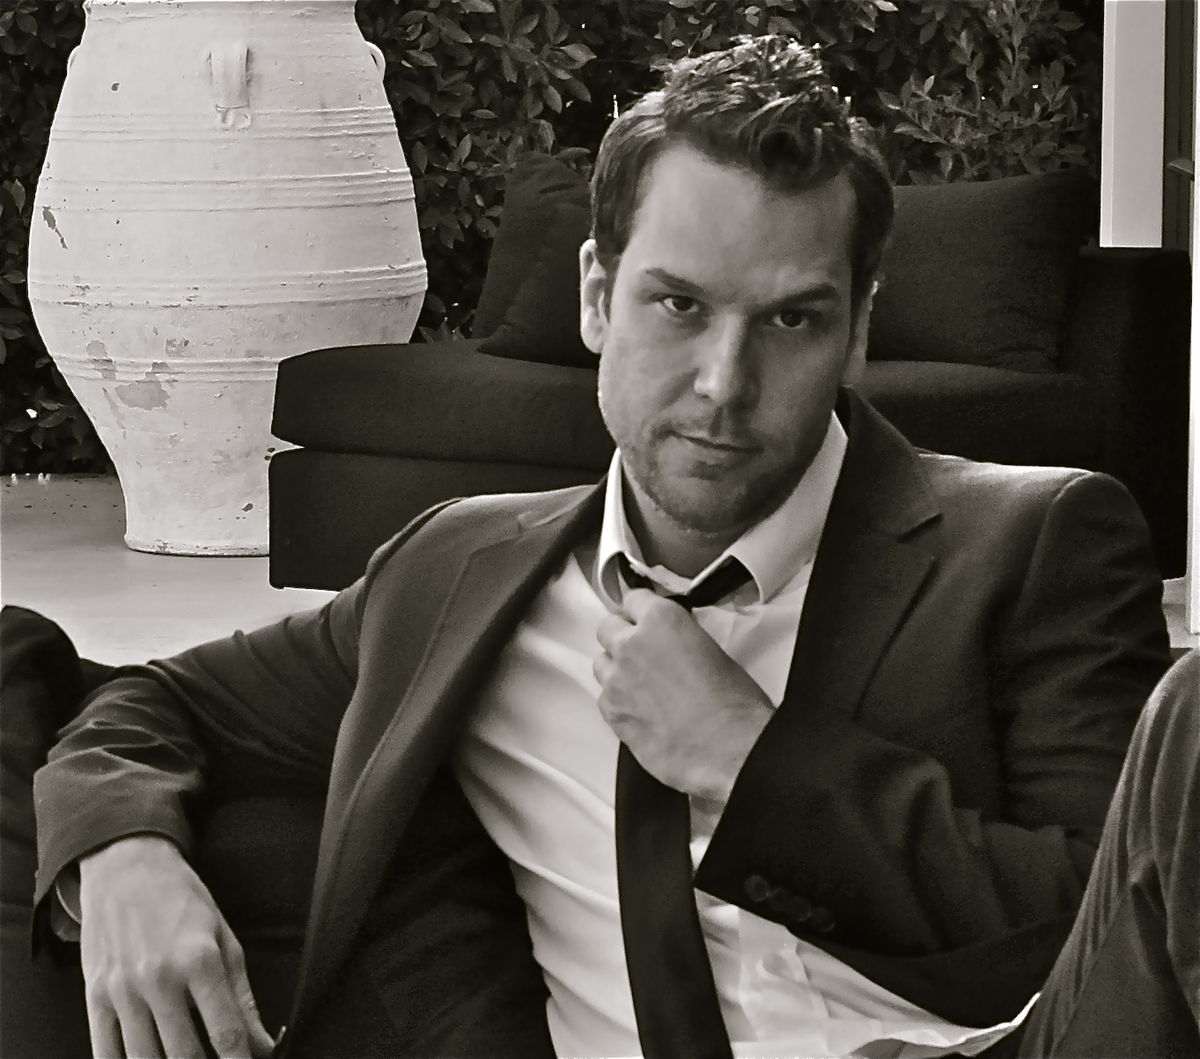 b06377c3432 Dane Cook - Wikipedia